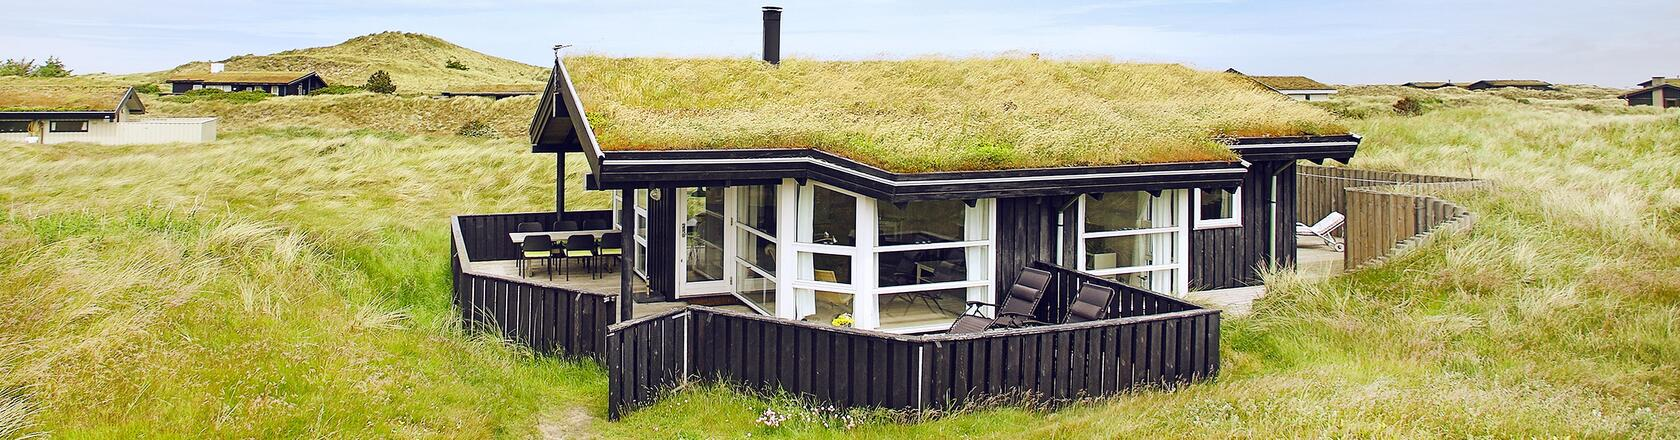 Hou Nord in Denmark - Rent a holiday home  with DanCenter